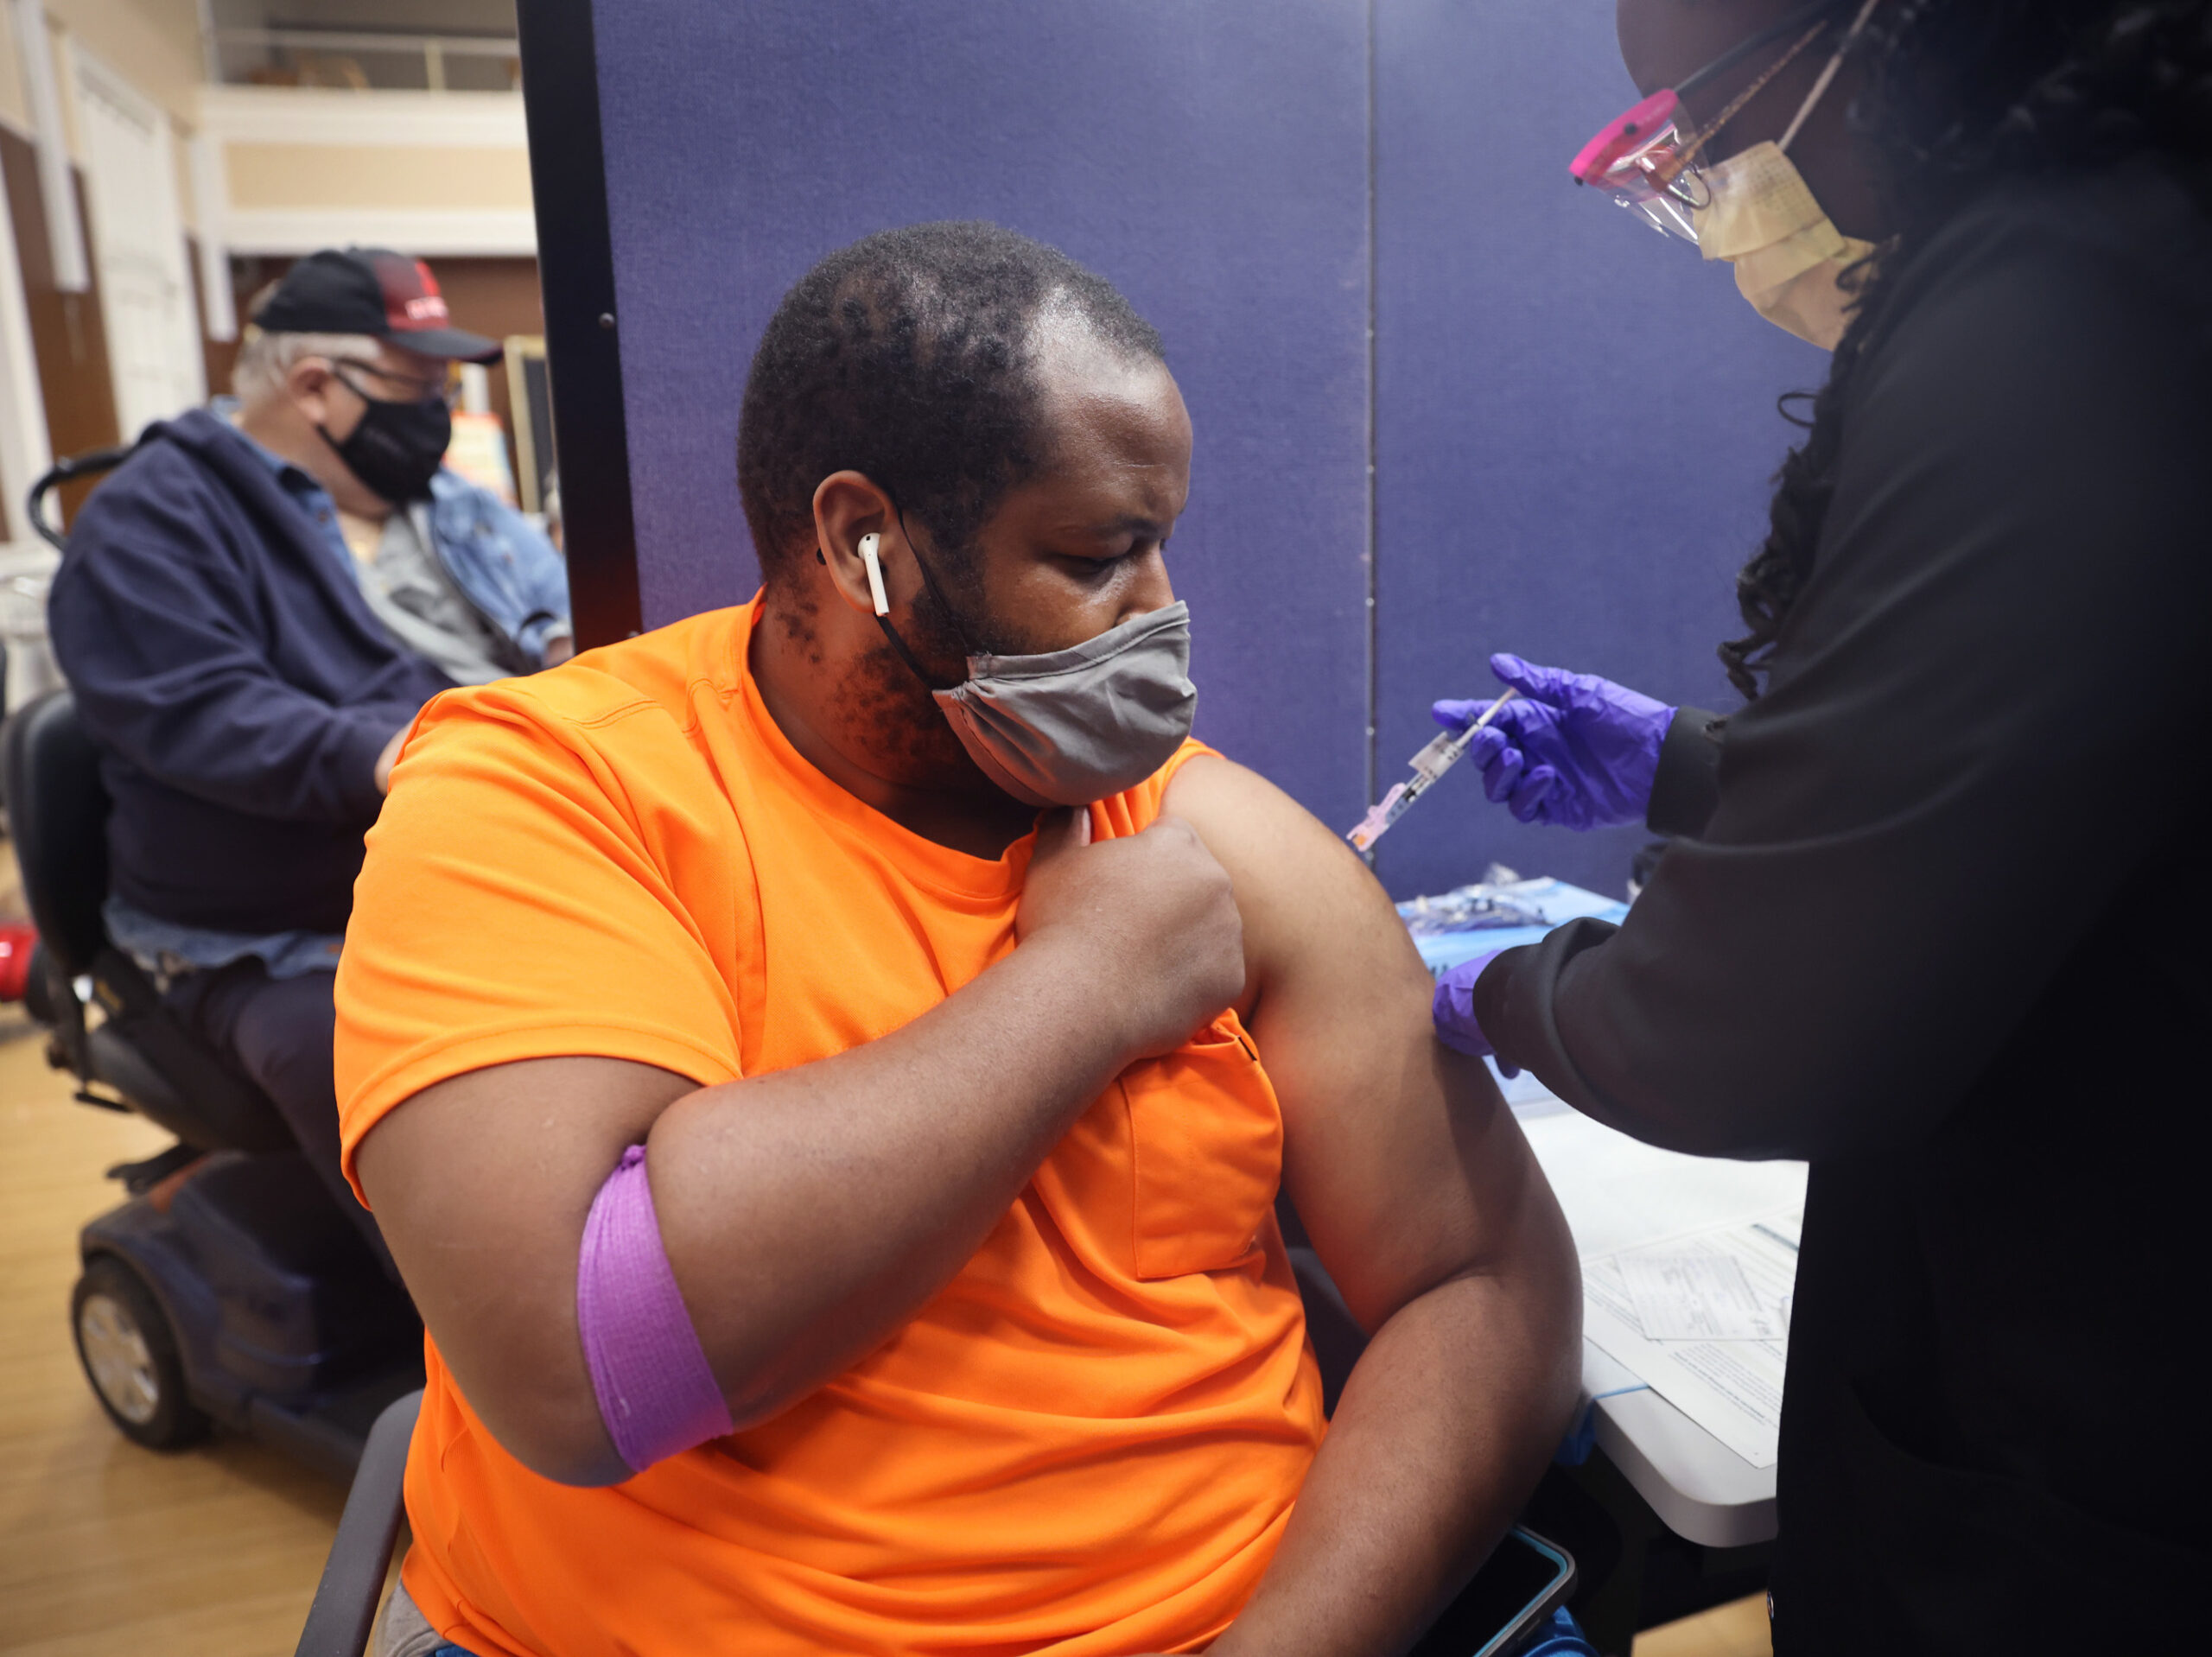 A man in an orange shirt lifts up his sleeve to get a shot.